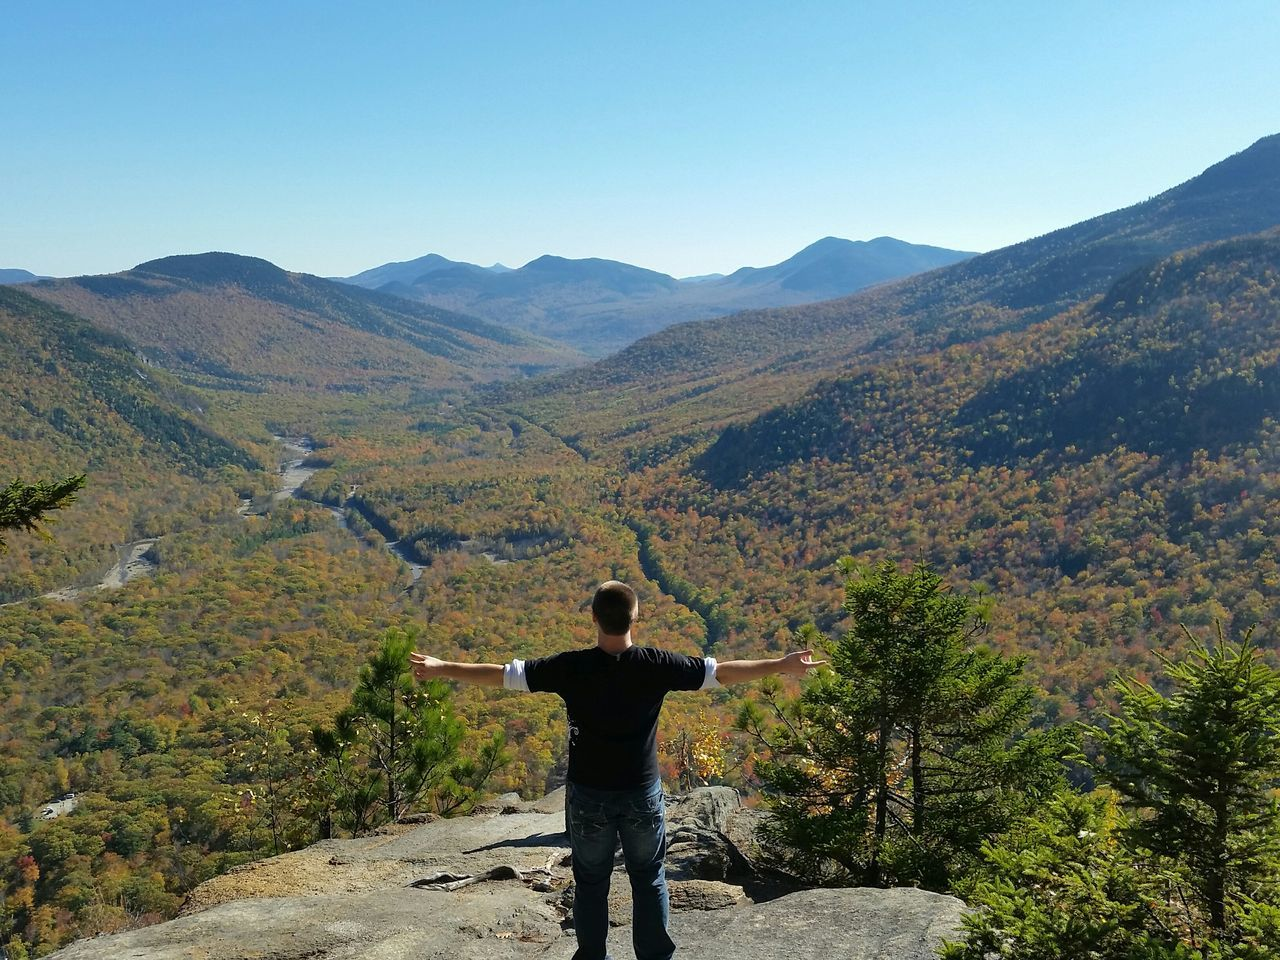 Rear View Of Man Standing On Rock With Arms Outstretched By Mountains Against Clear Blue Sky